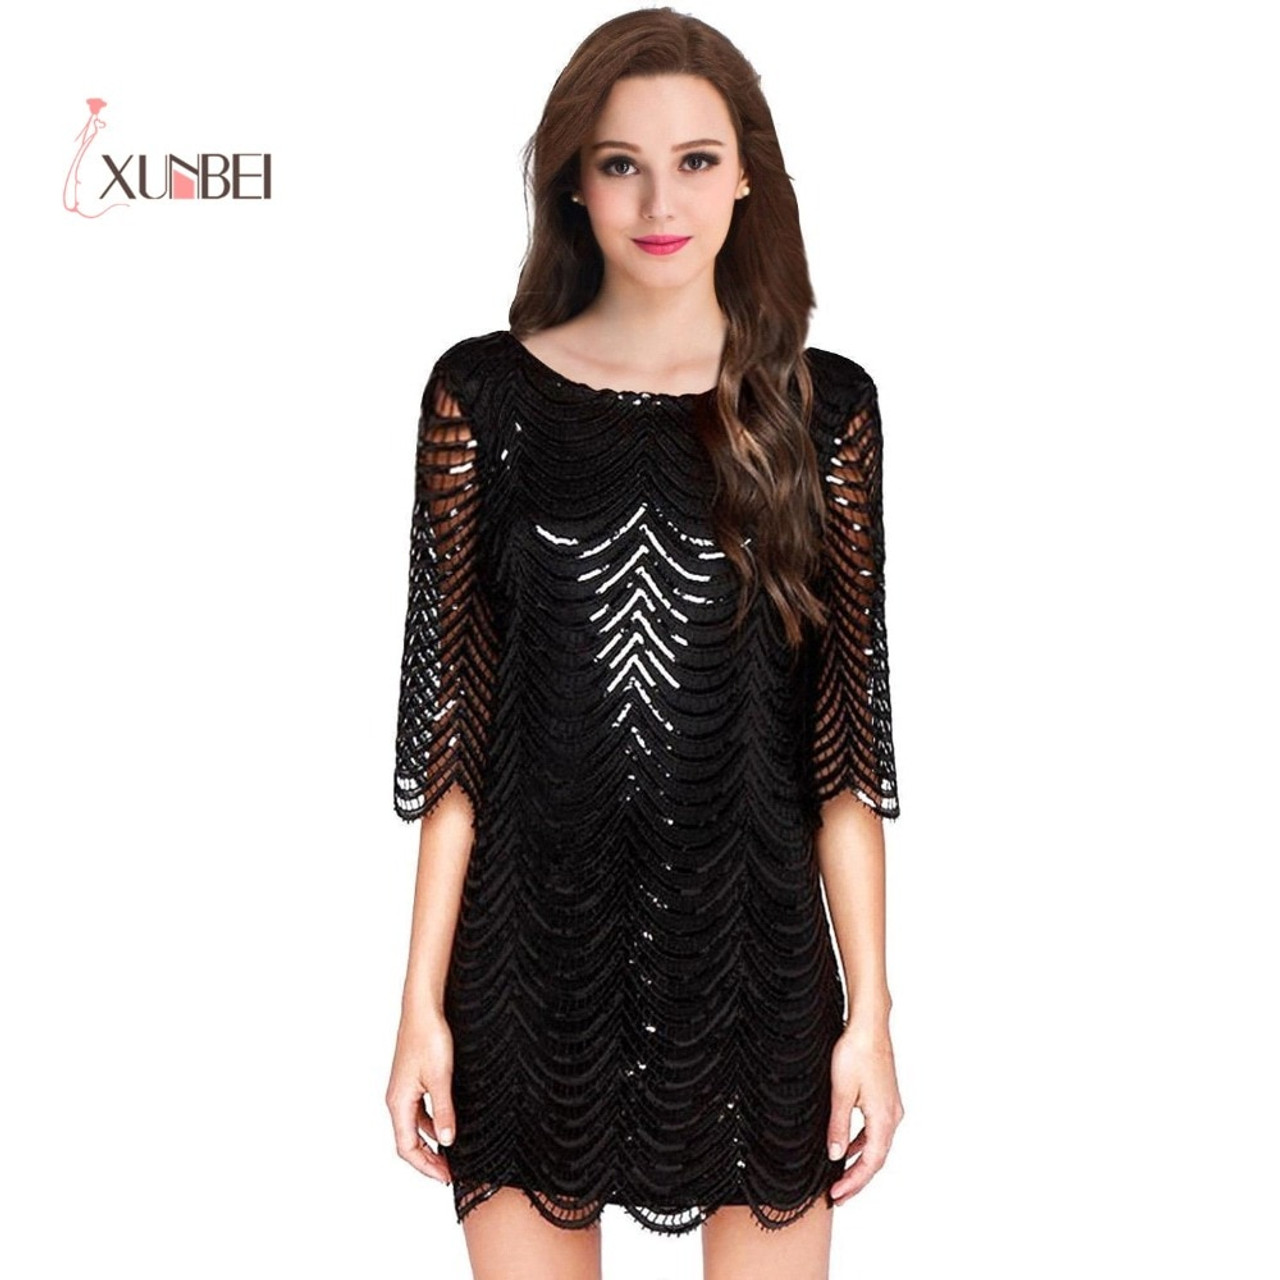 2cbddd1e5a4b Black 1/2 Long Sleeves Sequined Lace Robe Cocktail Dresses Mini Short  Straight Party Evening ...